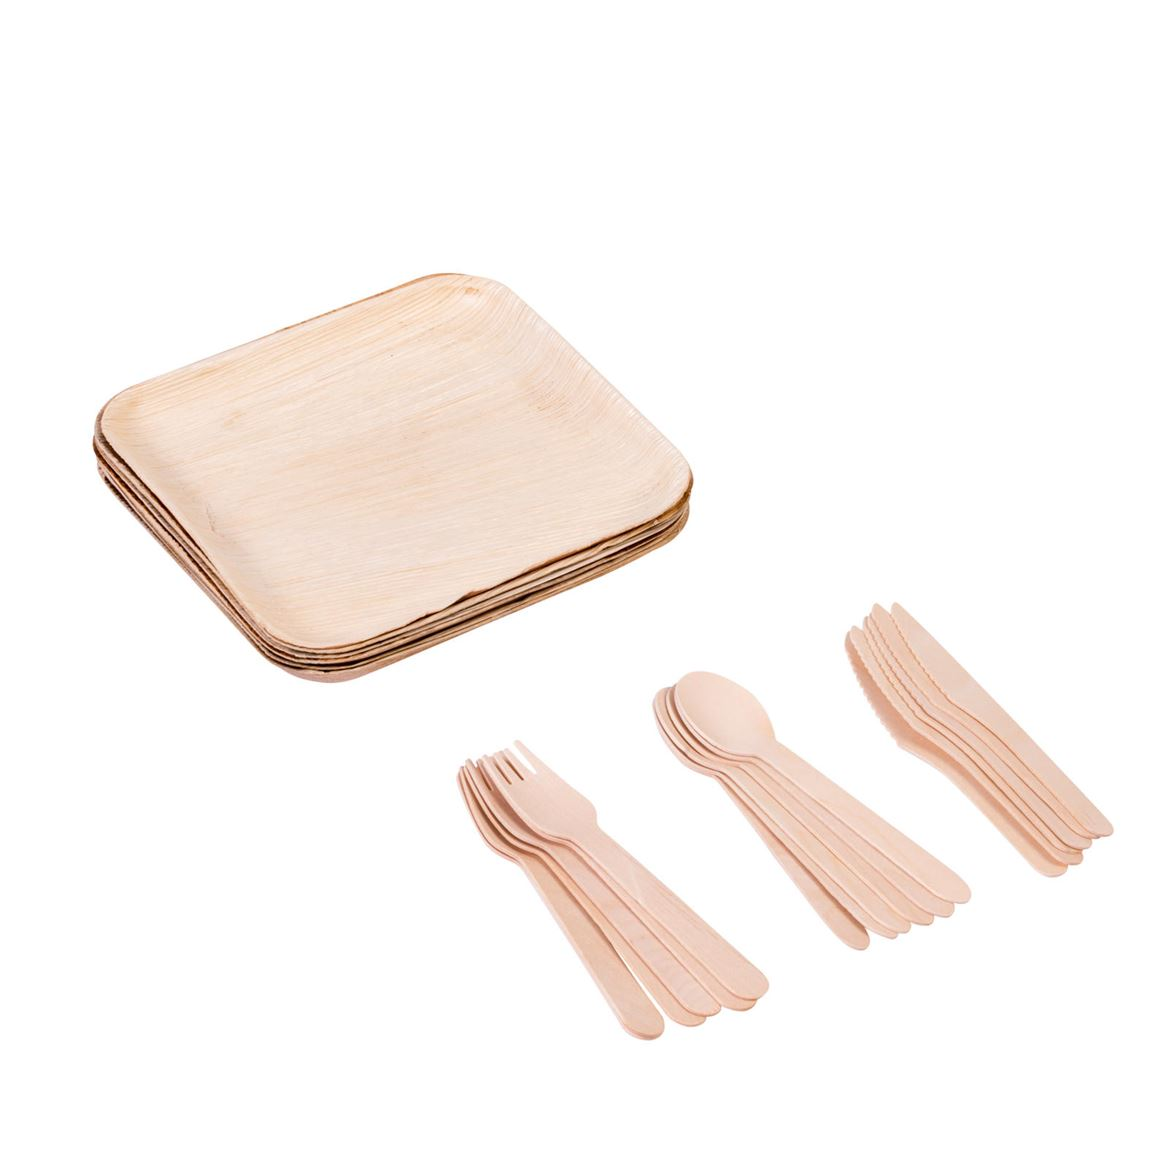 ARECA LEAF Set d'assiettes avec couverts naturel Larg. 20 x P 20 cm_areca-leaf-set-d'assiettes-avec-couverts-naturel-larg--20-x-p-20-cm